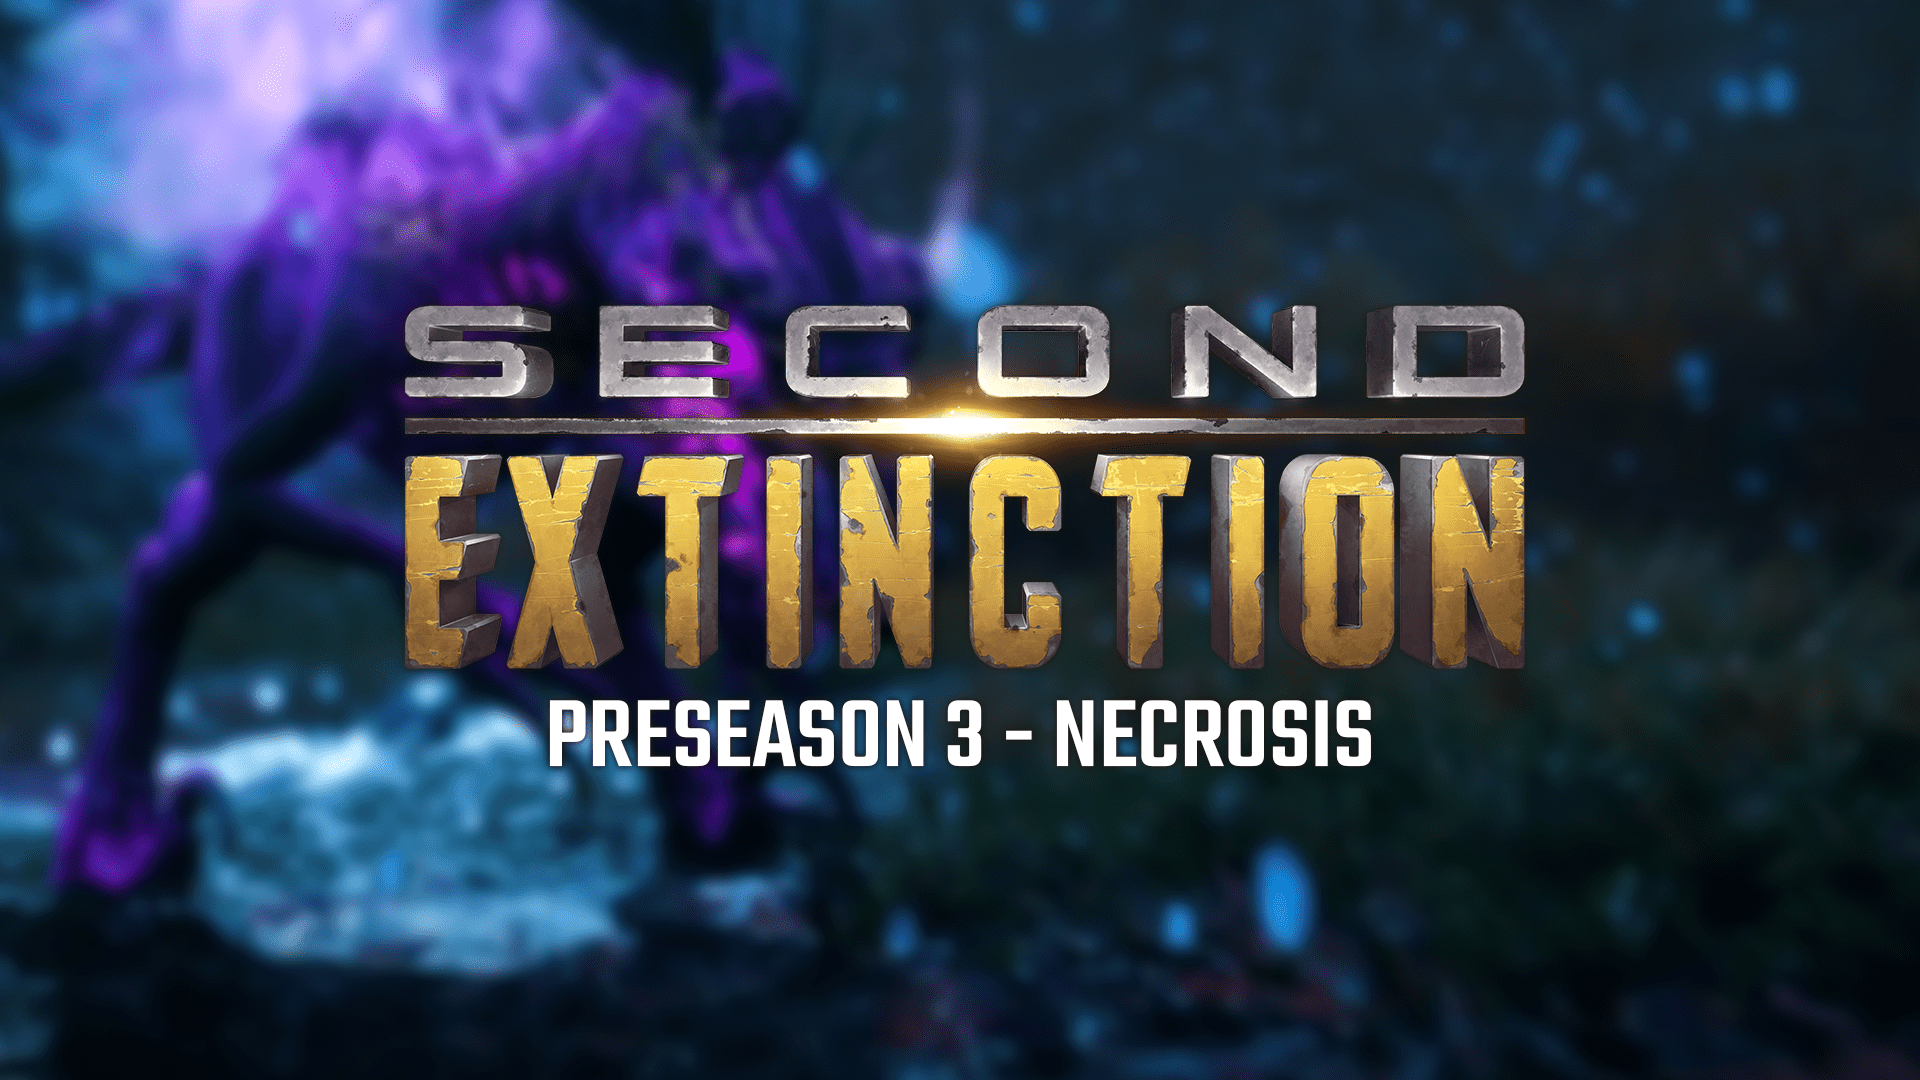 Preseason 3 – Necrosis Trailer